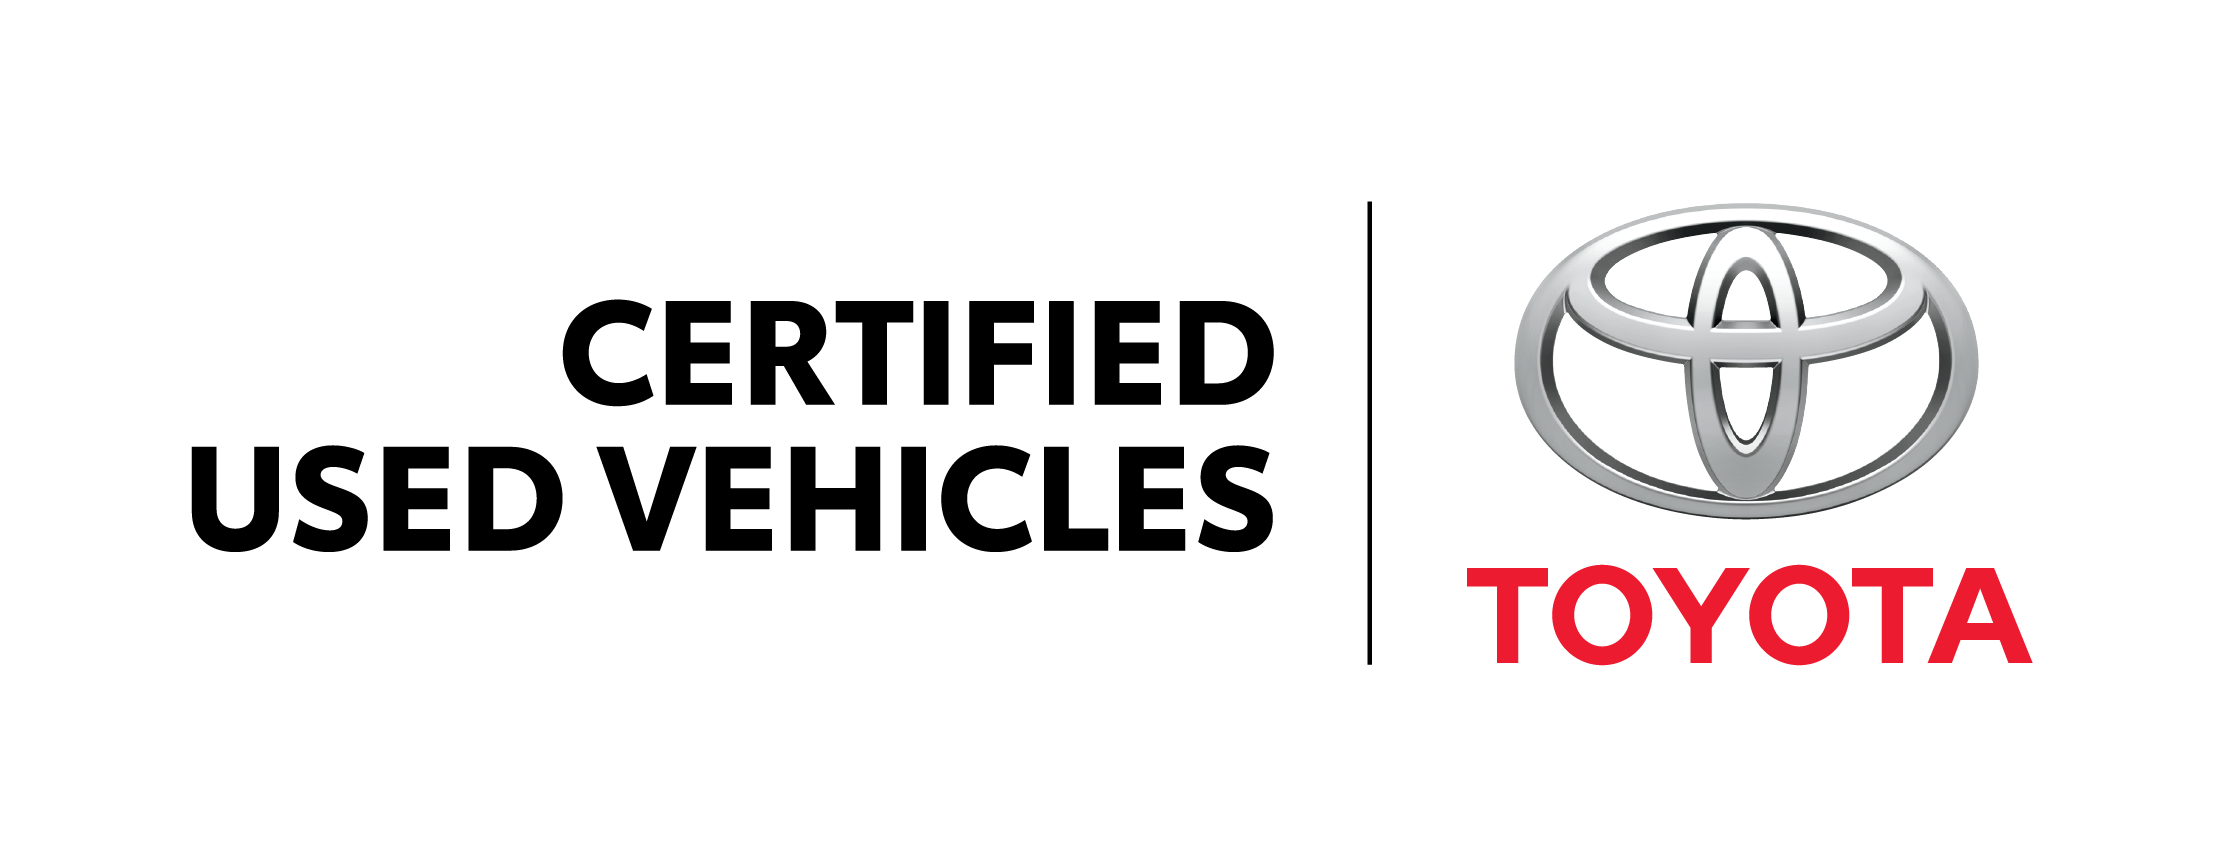 Toyota Tundra For Sale In Campbell River Bc Campbell River Toyota